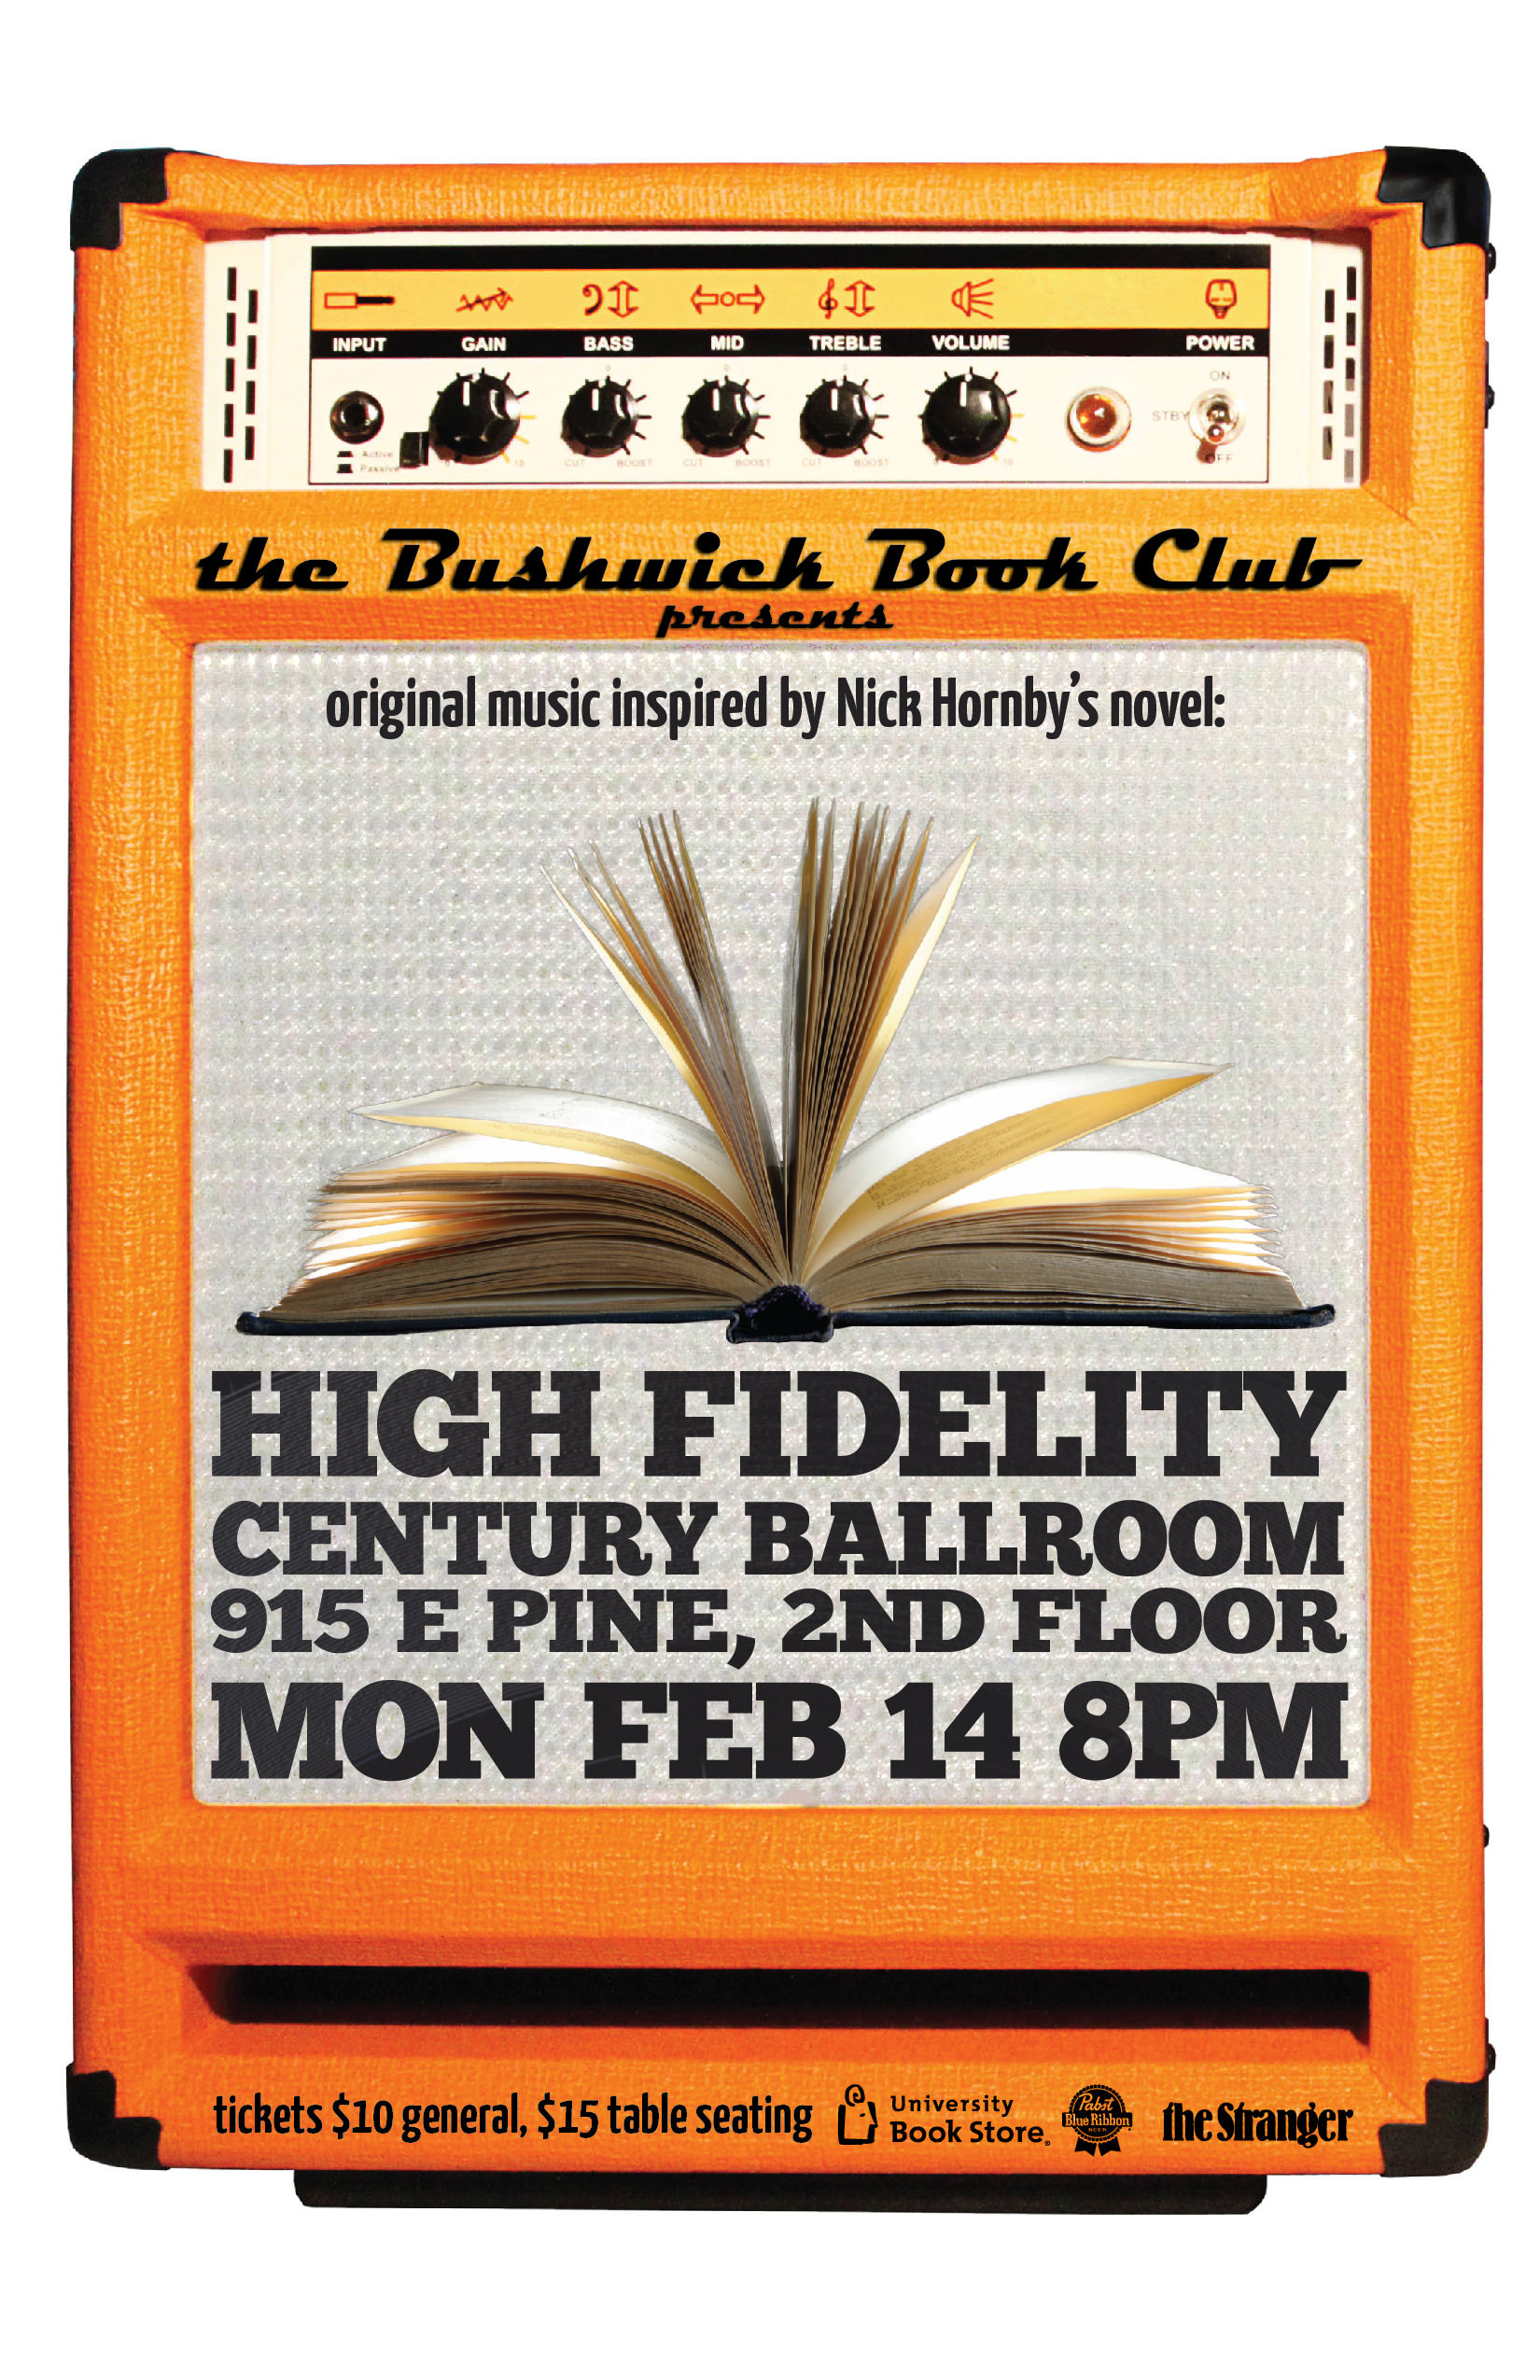 Poster a Week Free Posters Online - This Week: Bushwick Book Club - High Fidelity, Event Poster